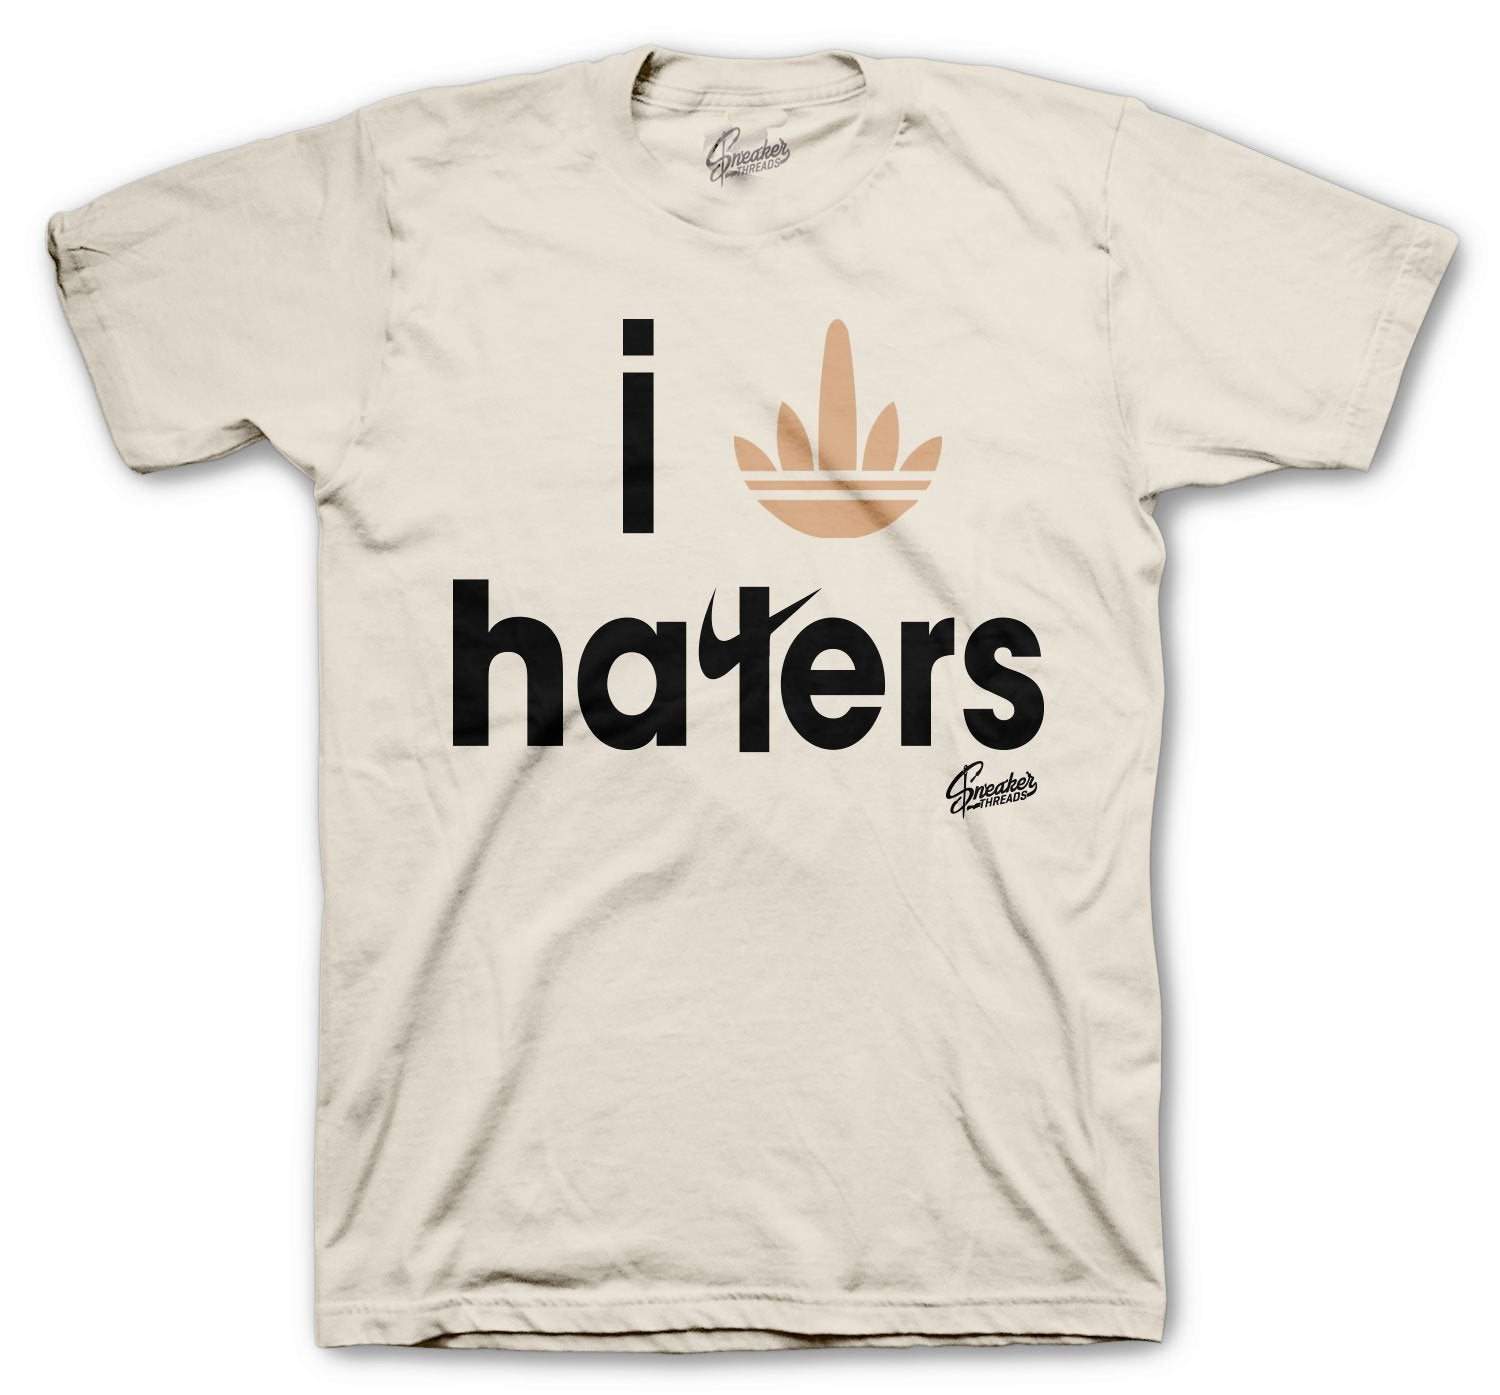 Stripe Haters shirt to wear with Yeezy 500 Stone